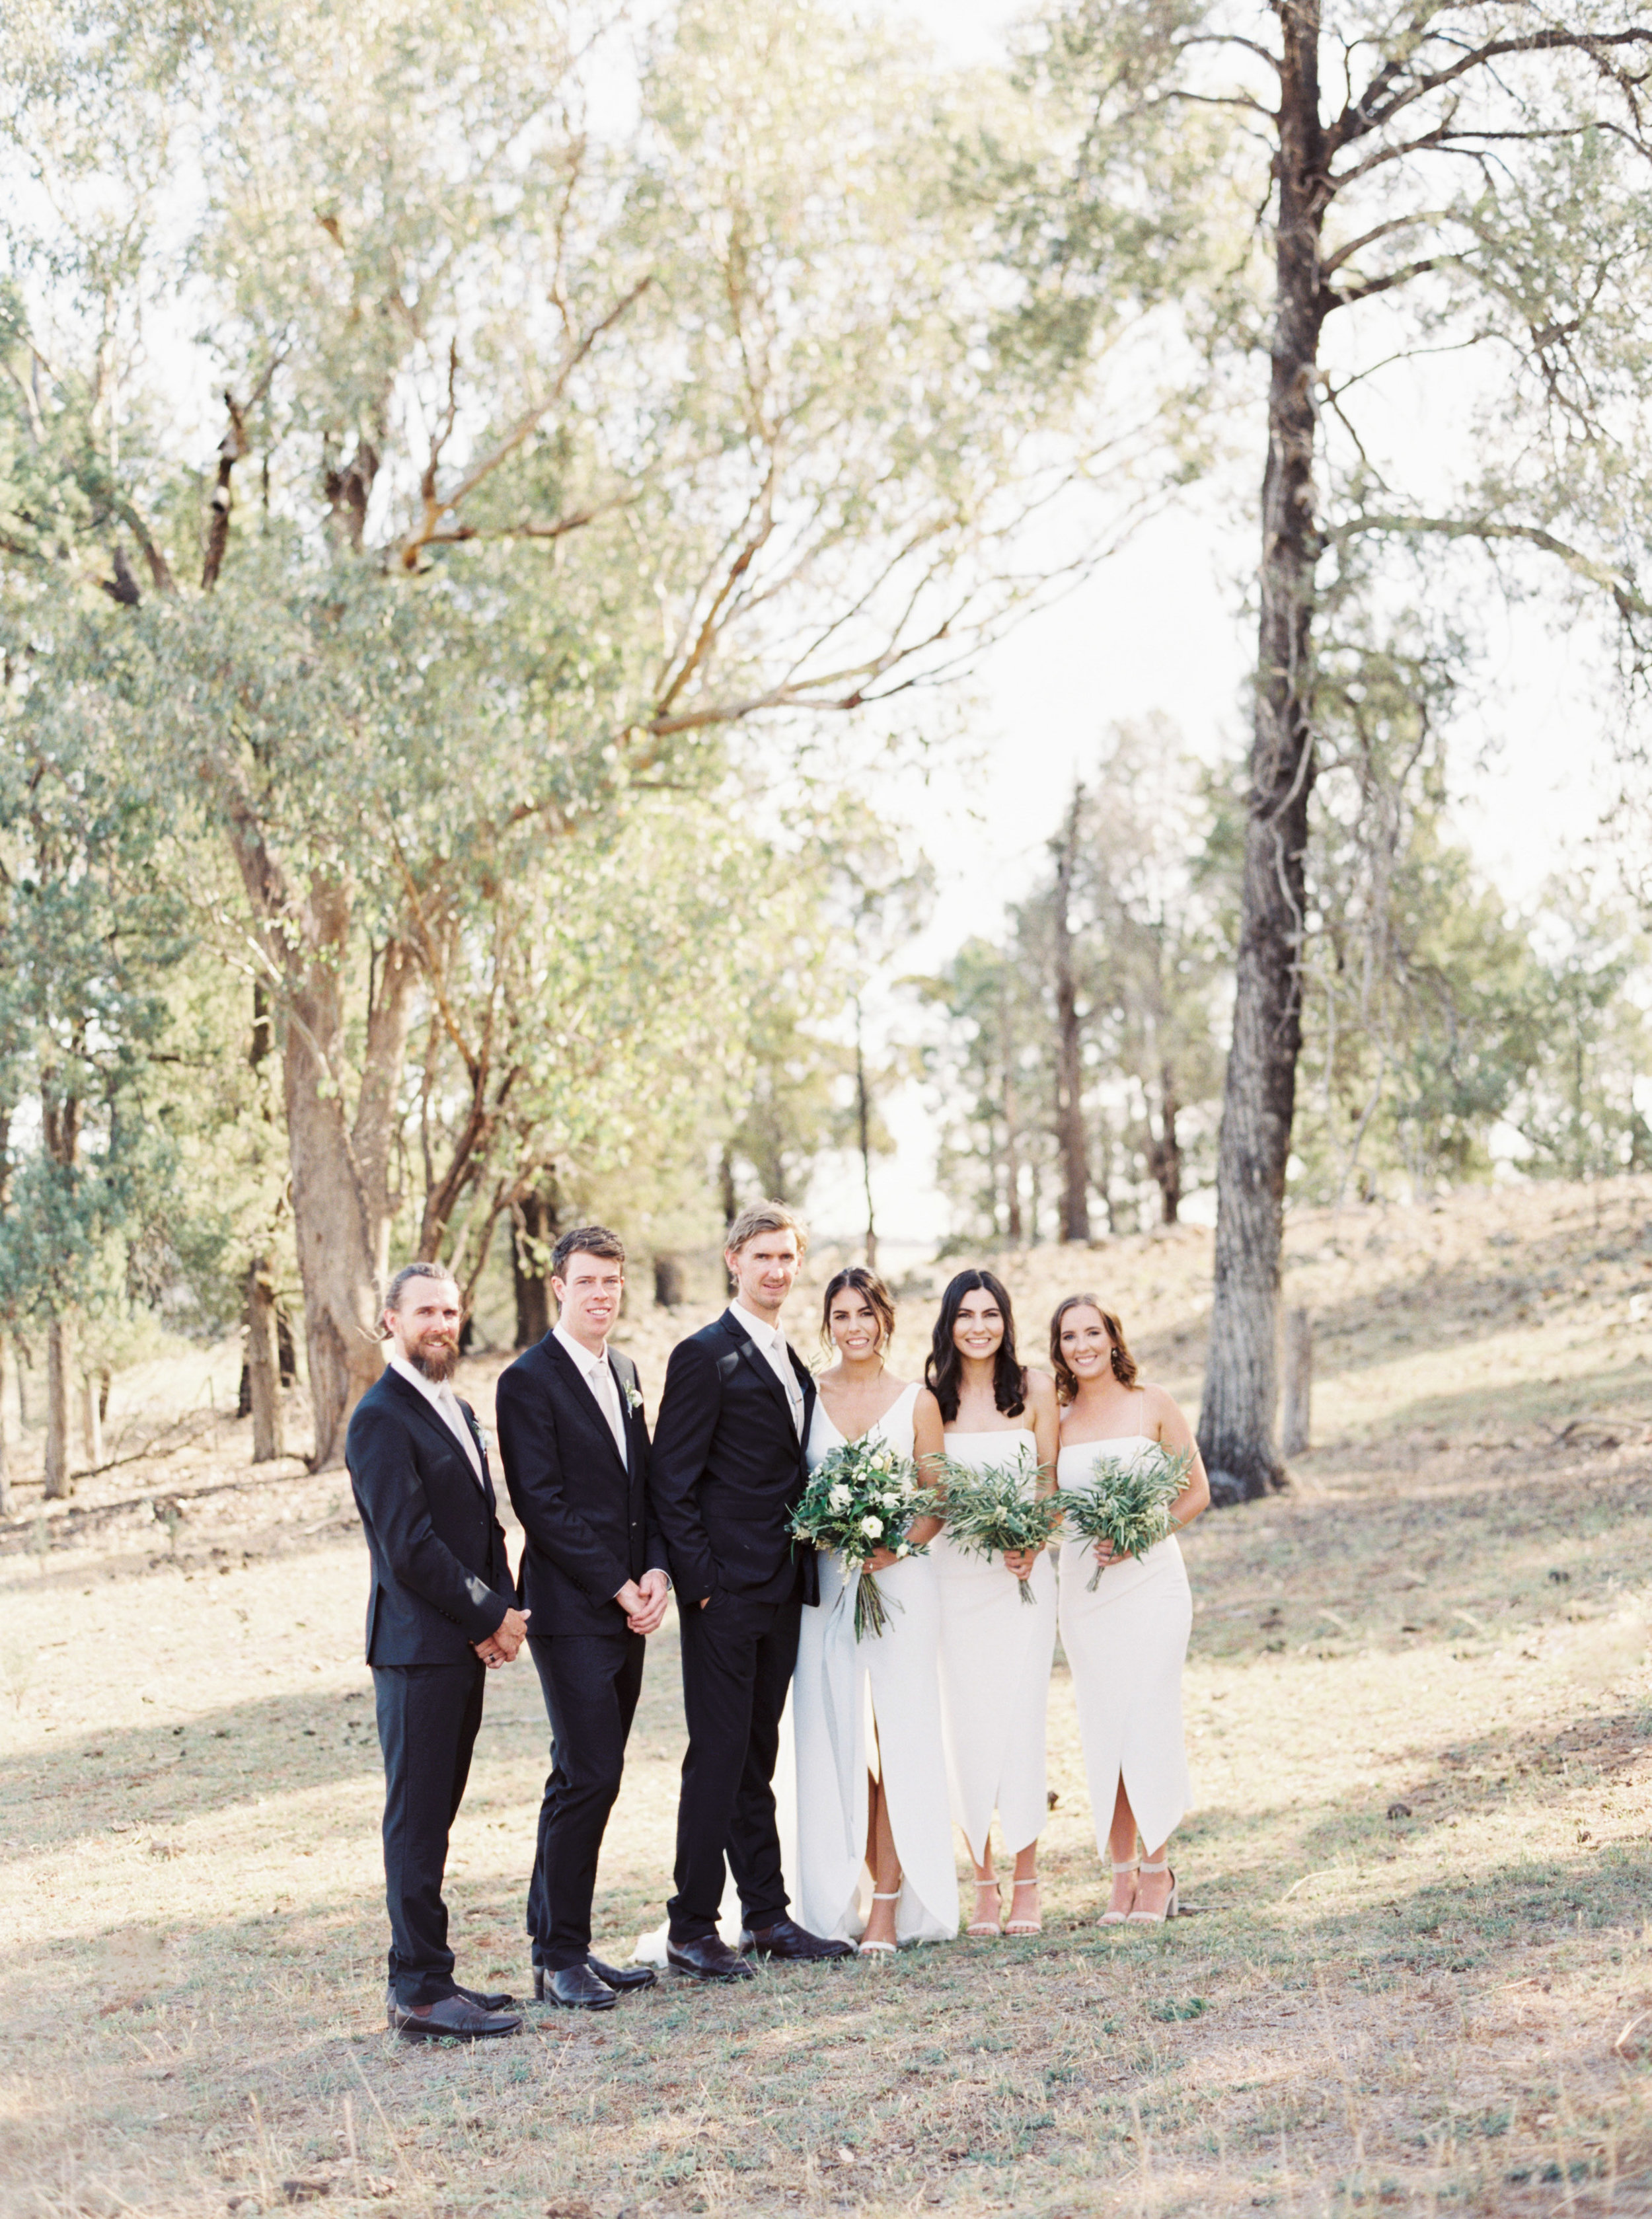 00043- Olive Tree Mediterranean Wedding in Mudgee NSW Australia Fine Art Film Wedding Lifestyle Photographer Sheri McMahon_.jpg